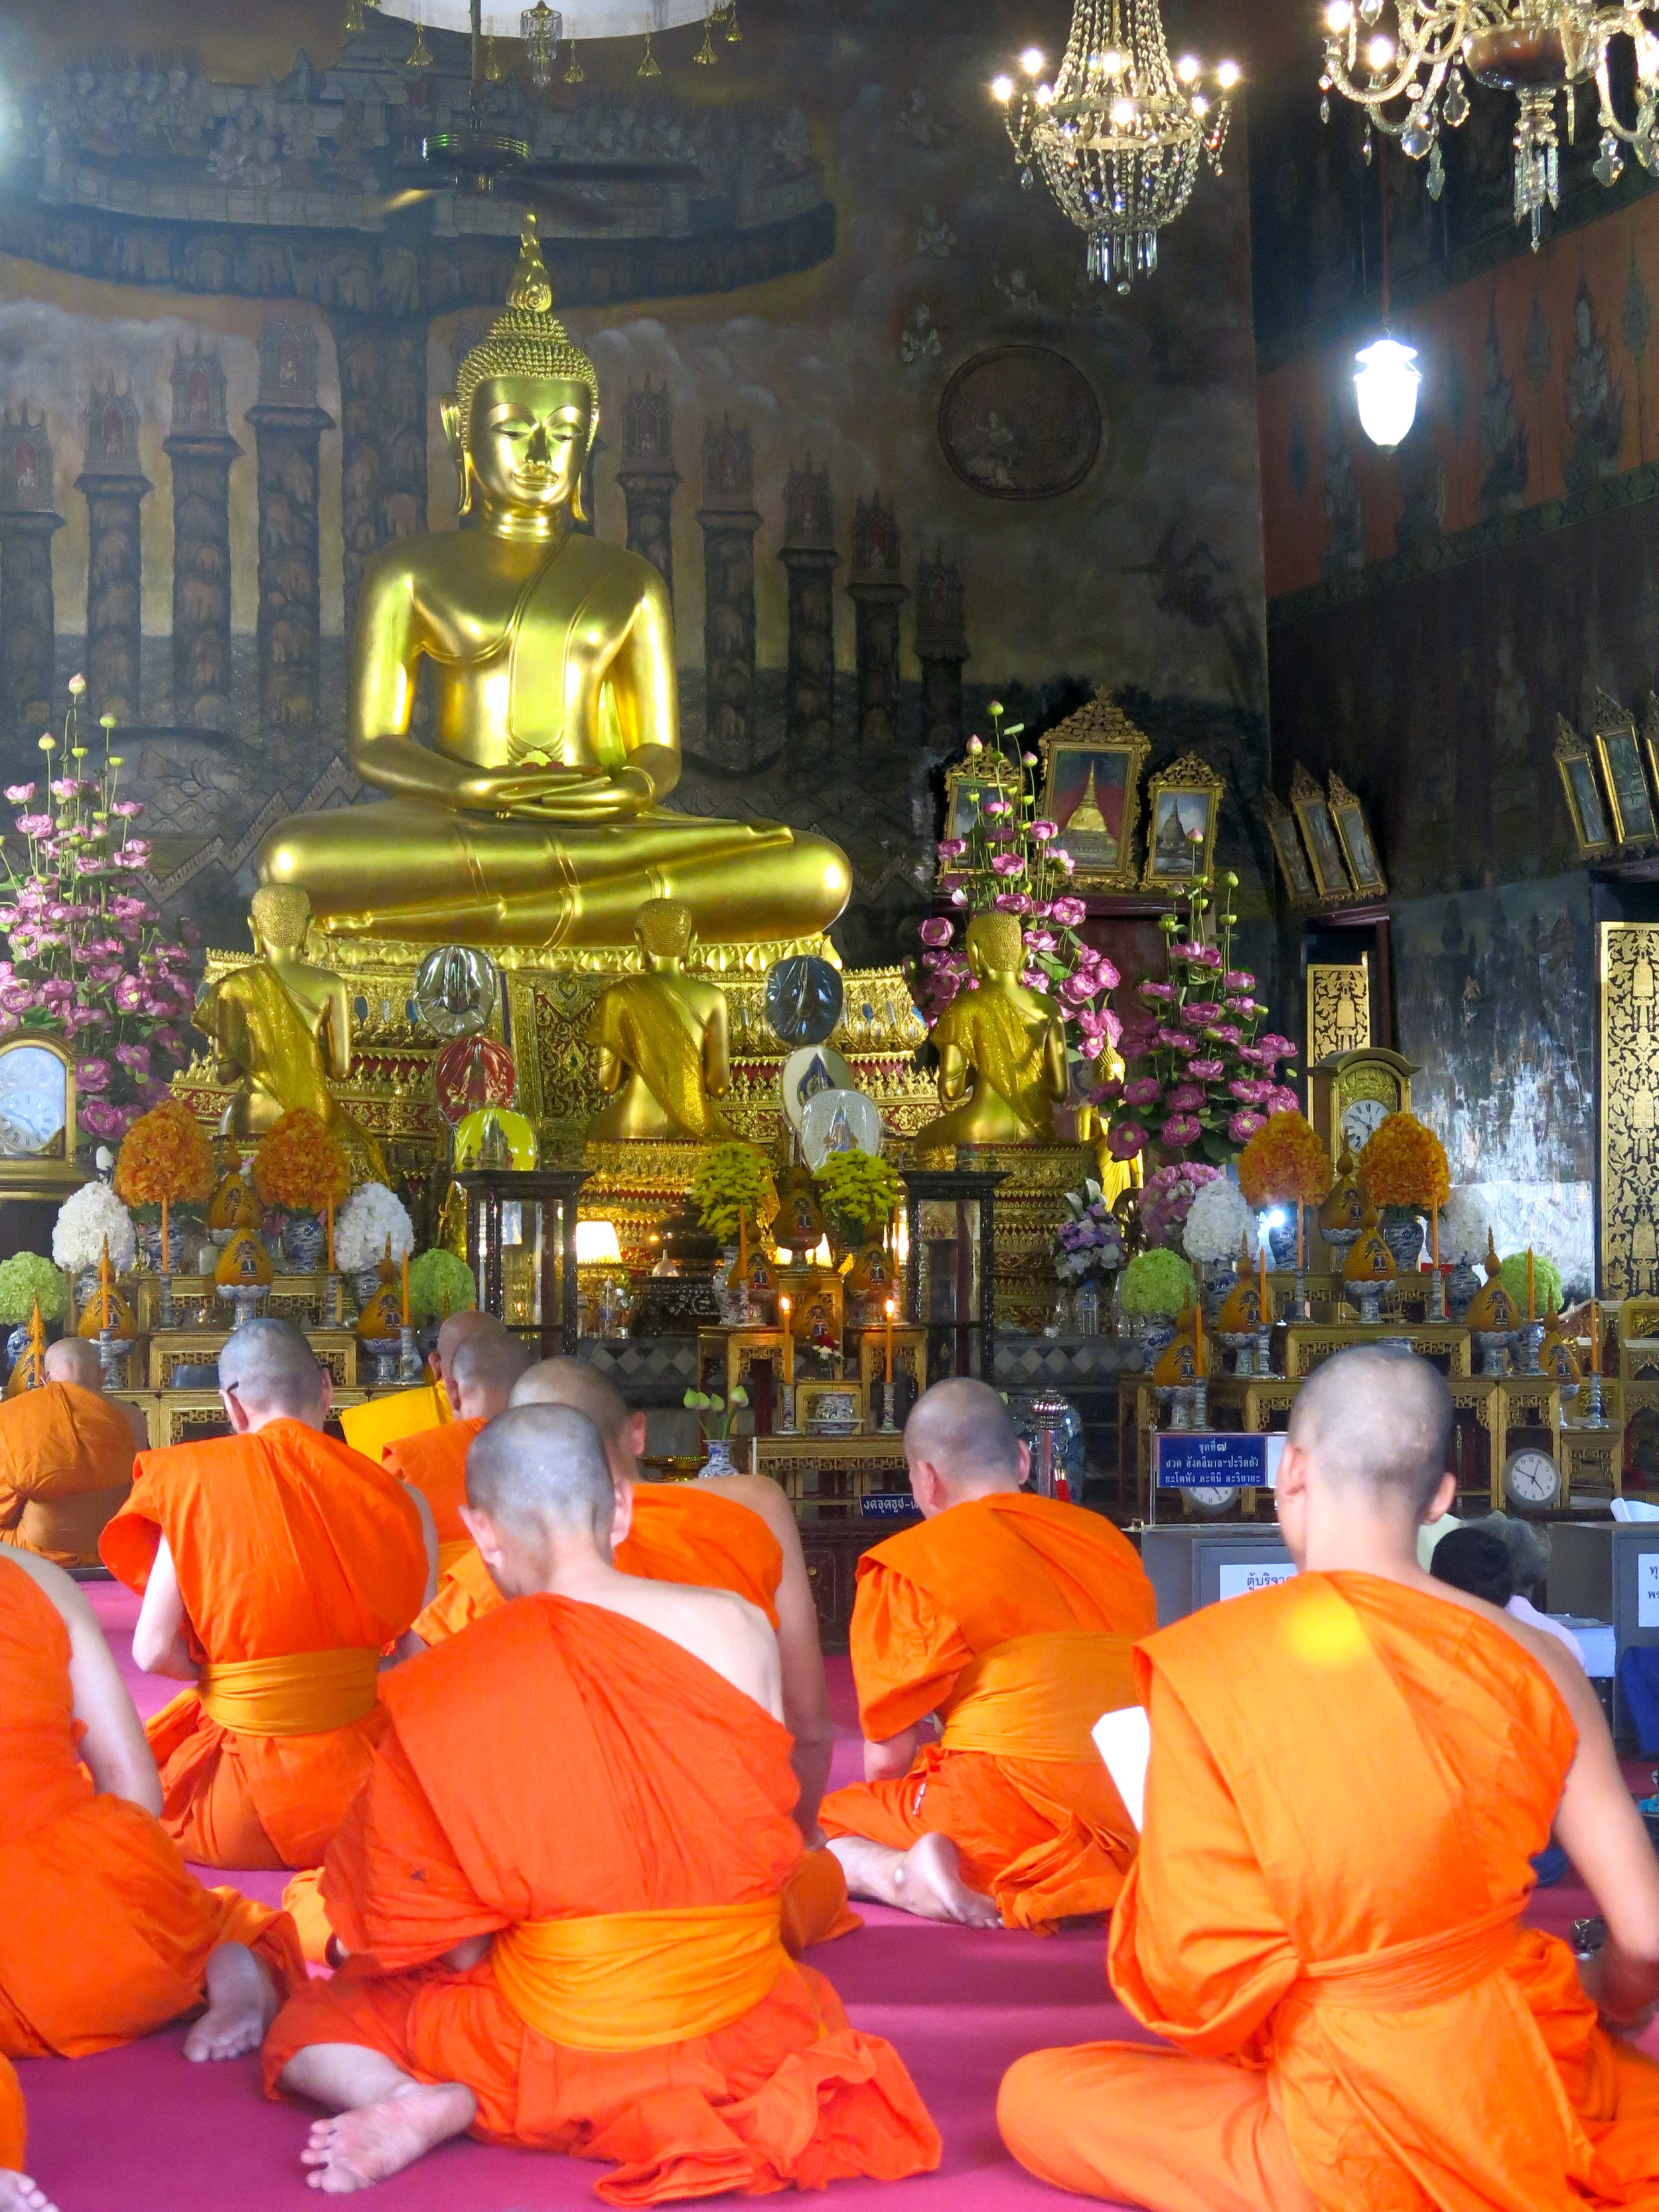 Buddhist monks praying together in the Wat Rakhang temple